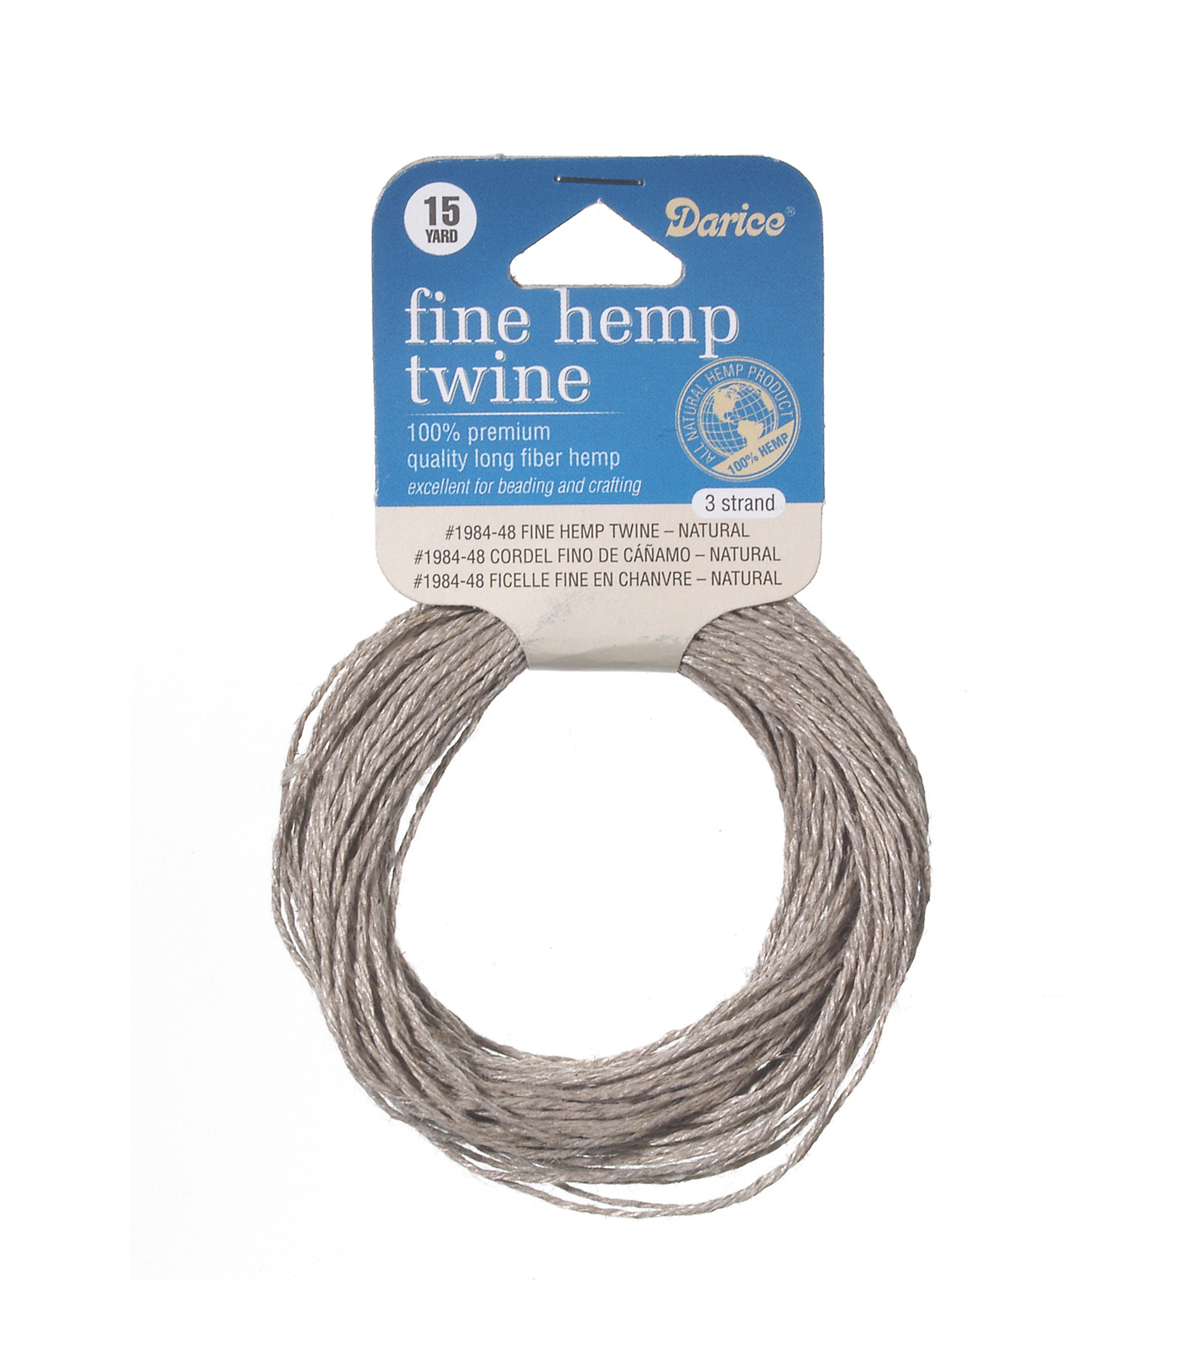 3 Stned Fine Twine Natural 15Yds